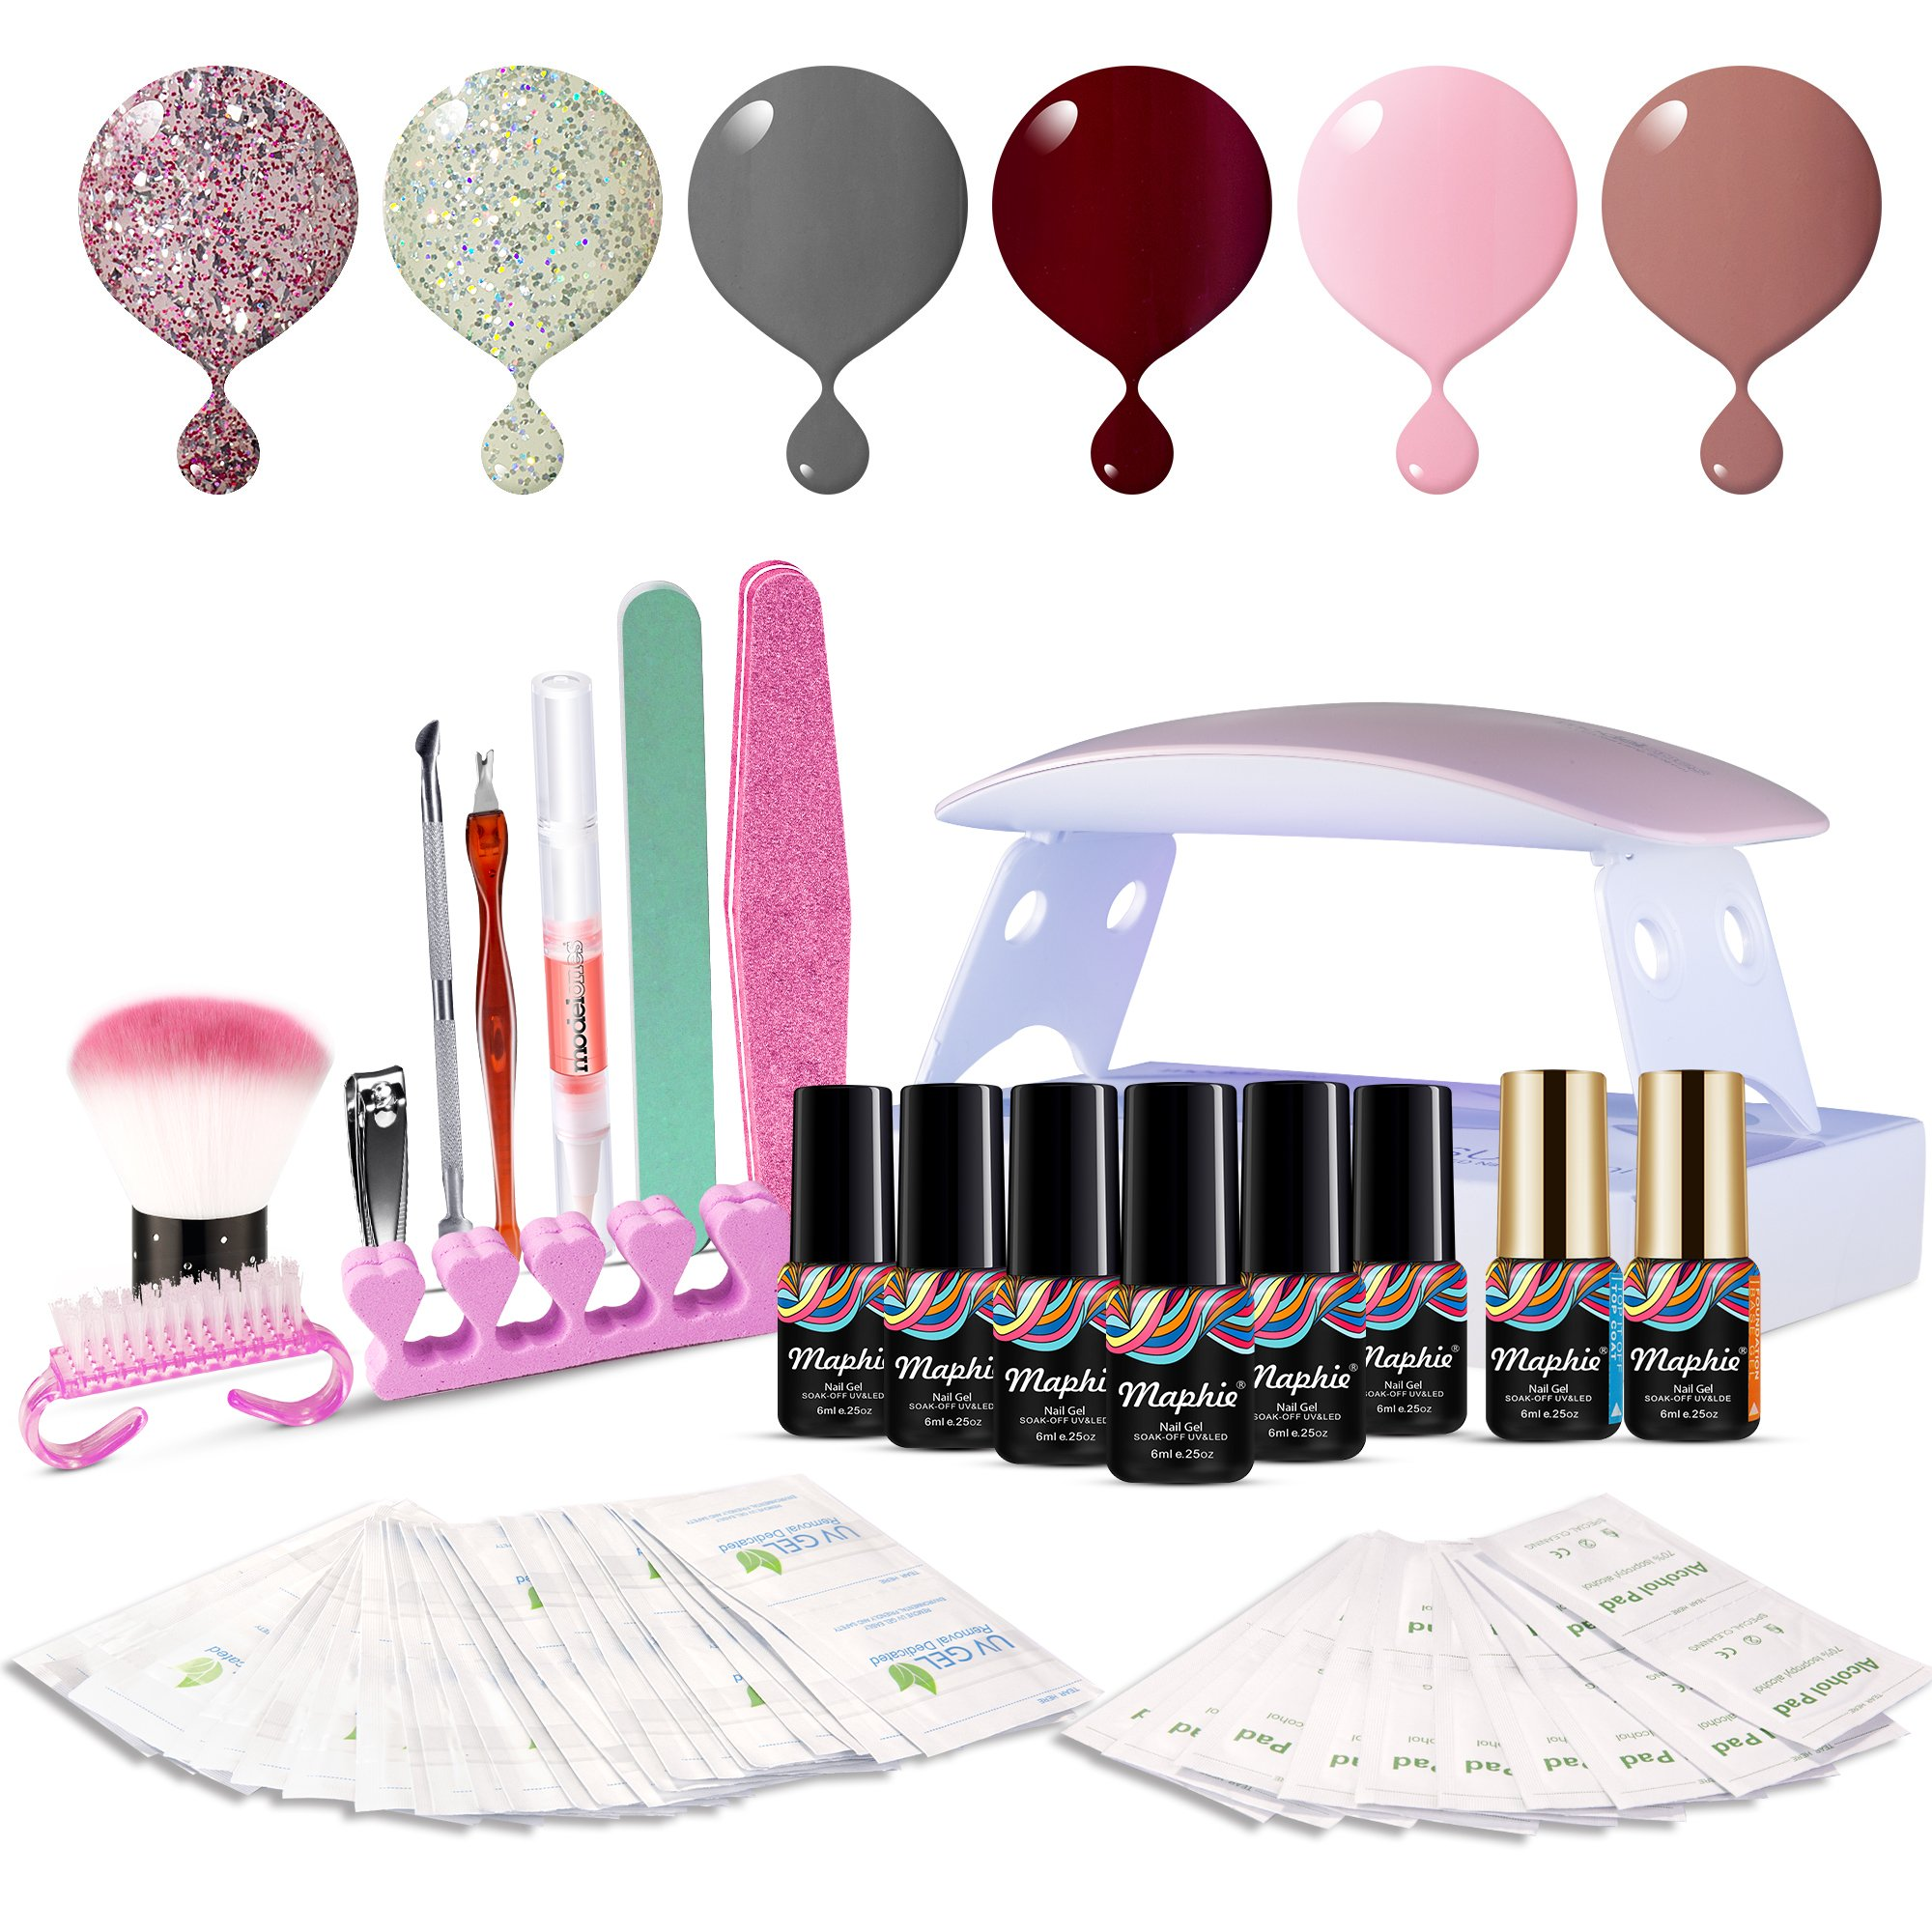 Maphie UV Nagellack Starter Set Kit Mit UV/LED lichthärtungsgerät Mini Nageltrockner Top Coat Base Coat und 6 Gellacke product image